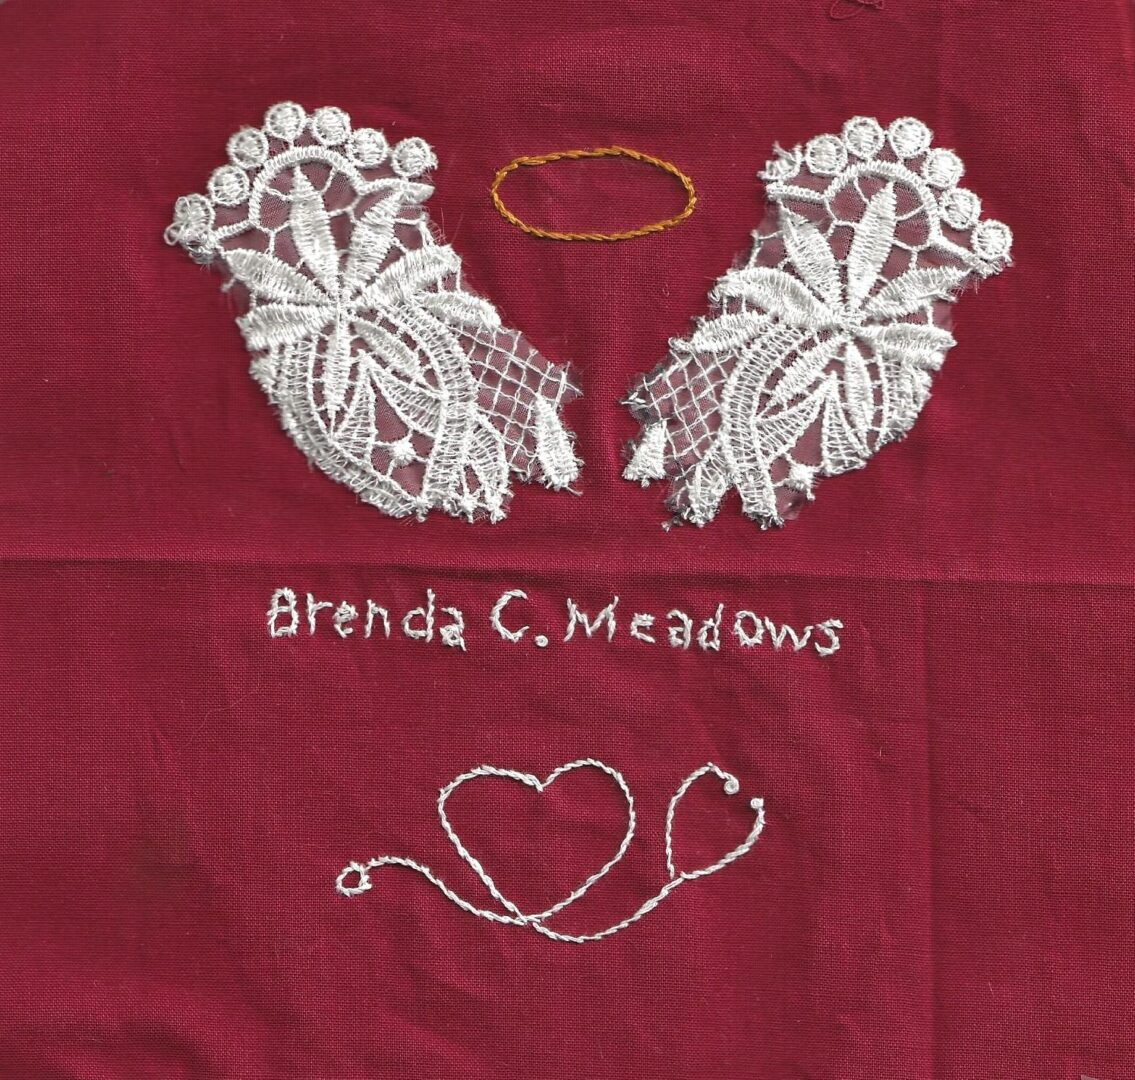 IN MEMORY OF BRENDA CHRISTOPHER MEADOWS -DIED MARCH 29, 2020